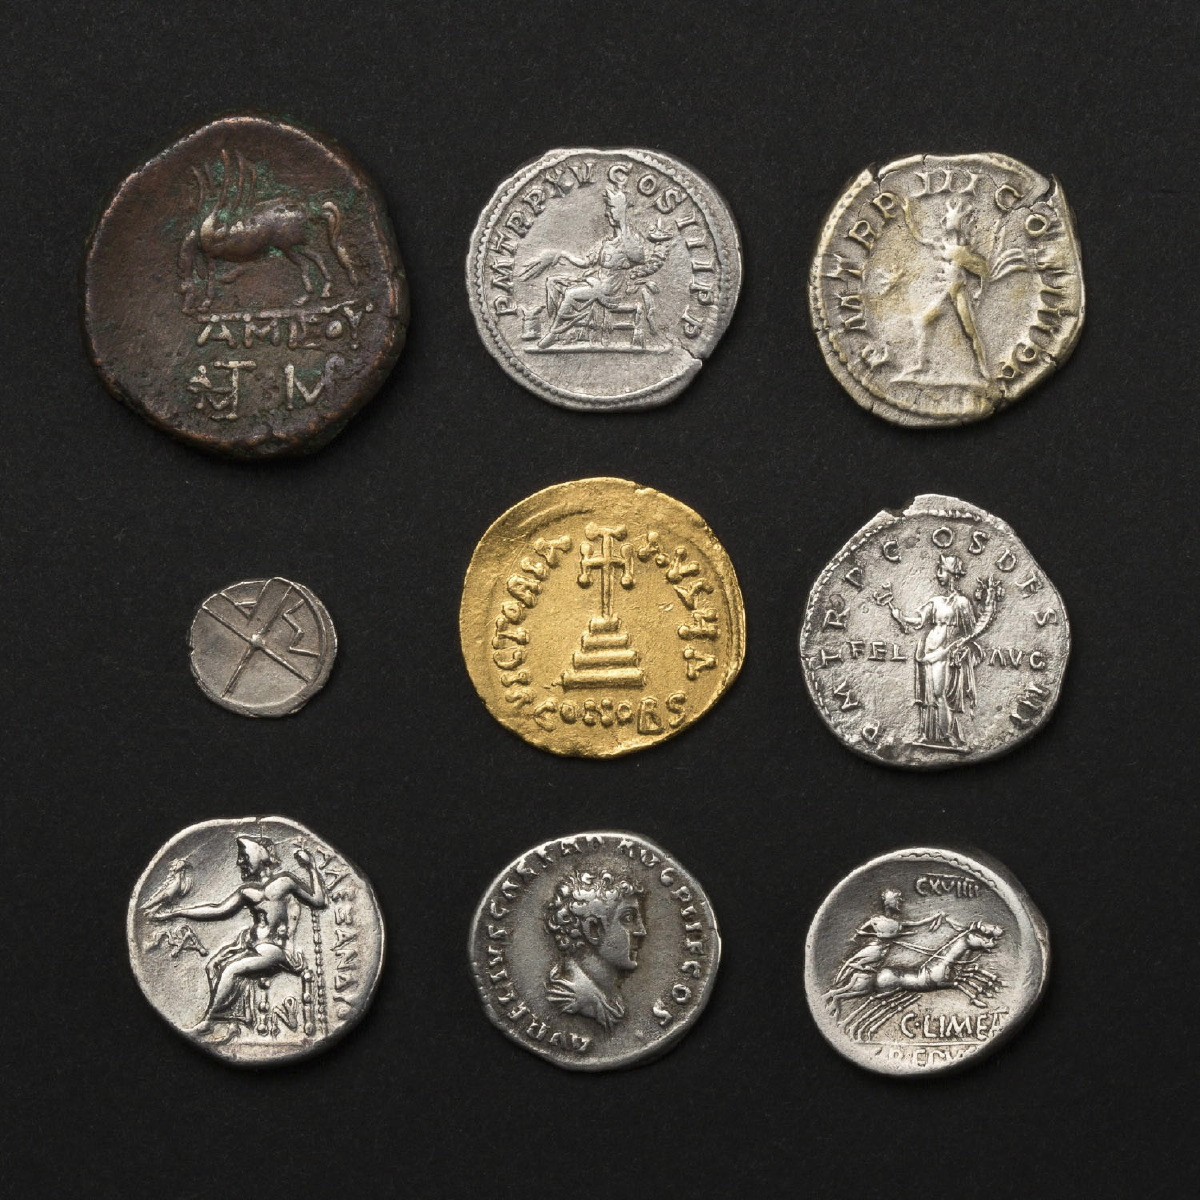 Photo of antique-coins-archaeology-galerie-golconda